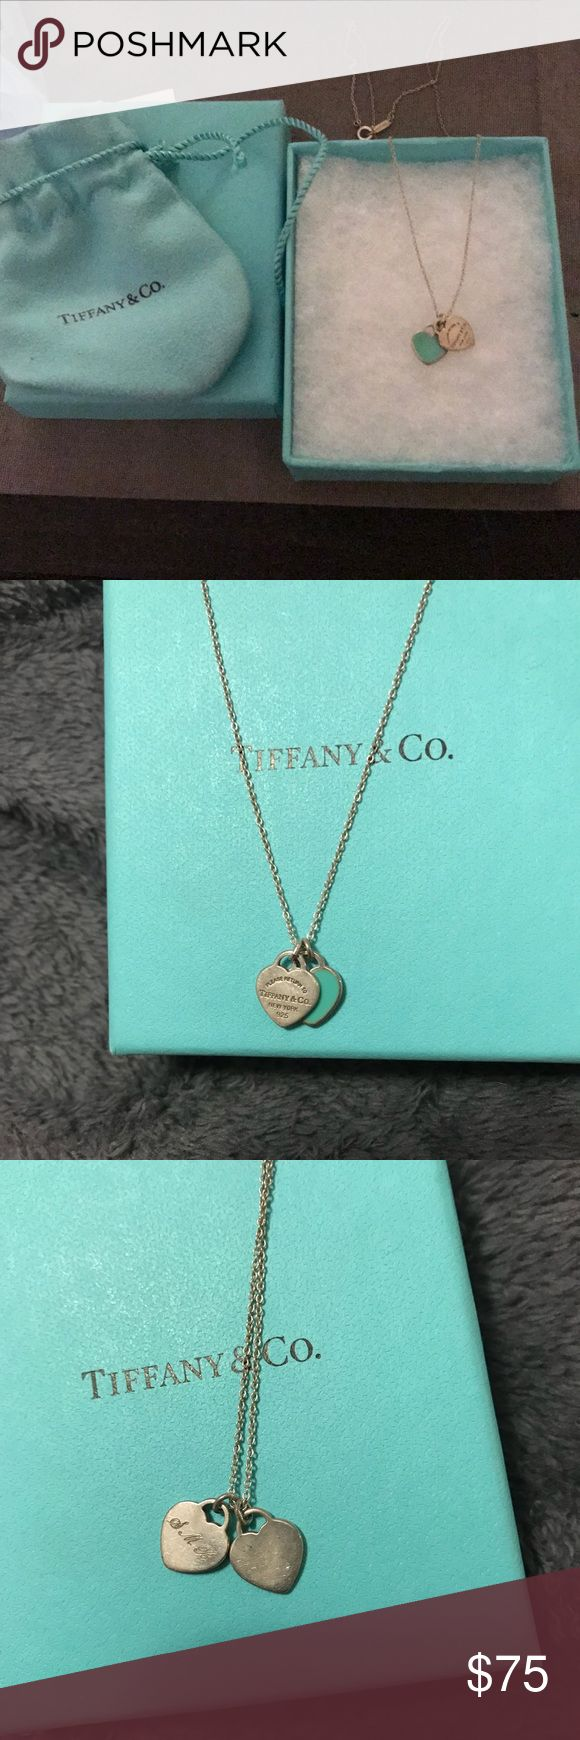 Tiffany heart necklace Good condition barley worn. Has SMB initials engraved on back of blue heart. Tiffany & Co. Jewelry Necklaces